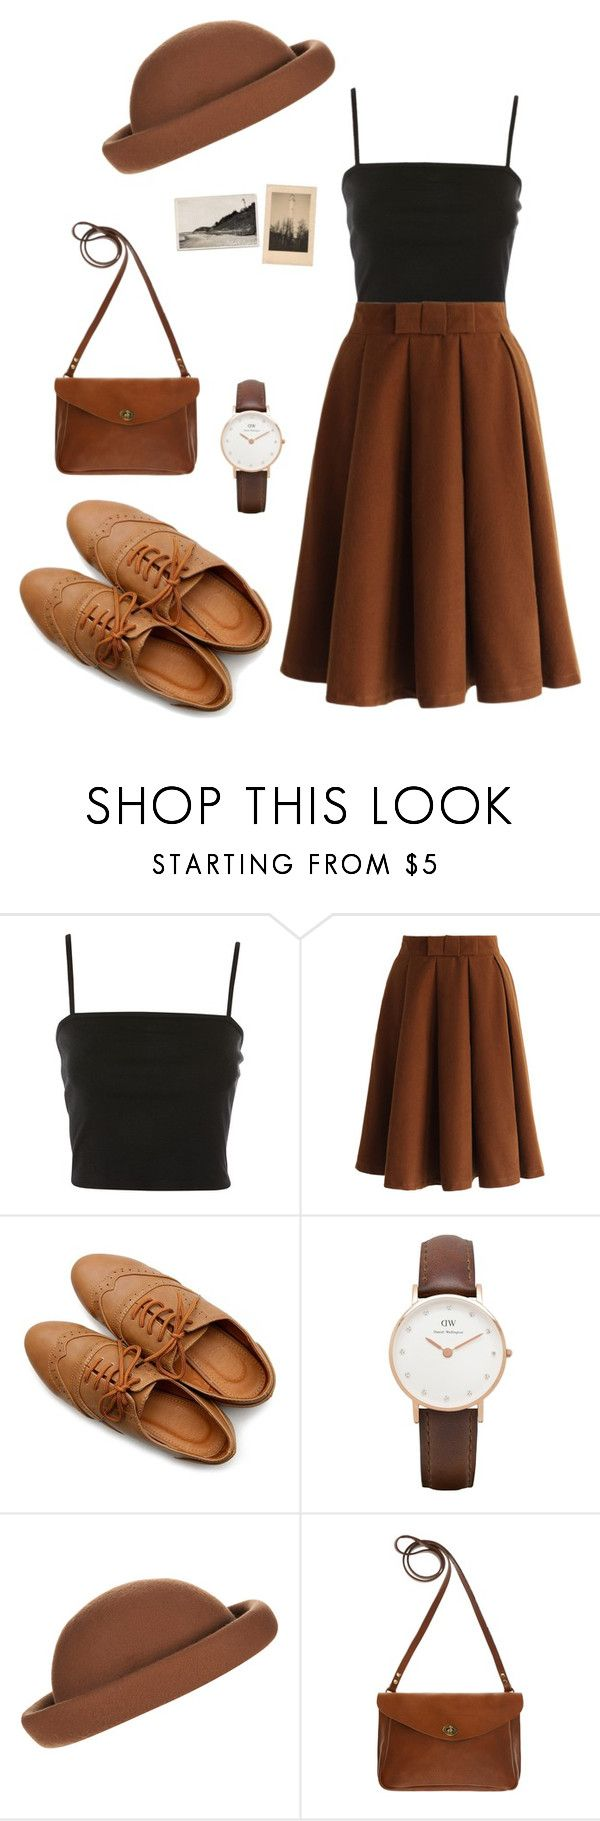 """Casual outfit"" by teraxd ❤ liked on Polyvore featuring Topshop, Chicwish, Ollio, Daniel Wellington and Mimi Berry"